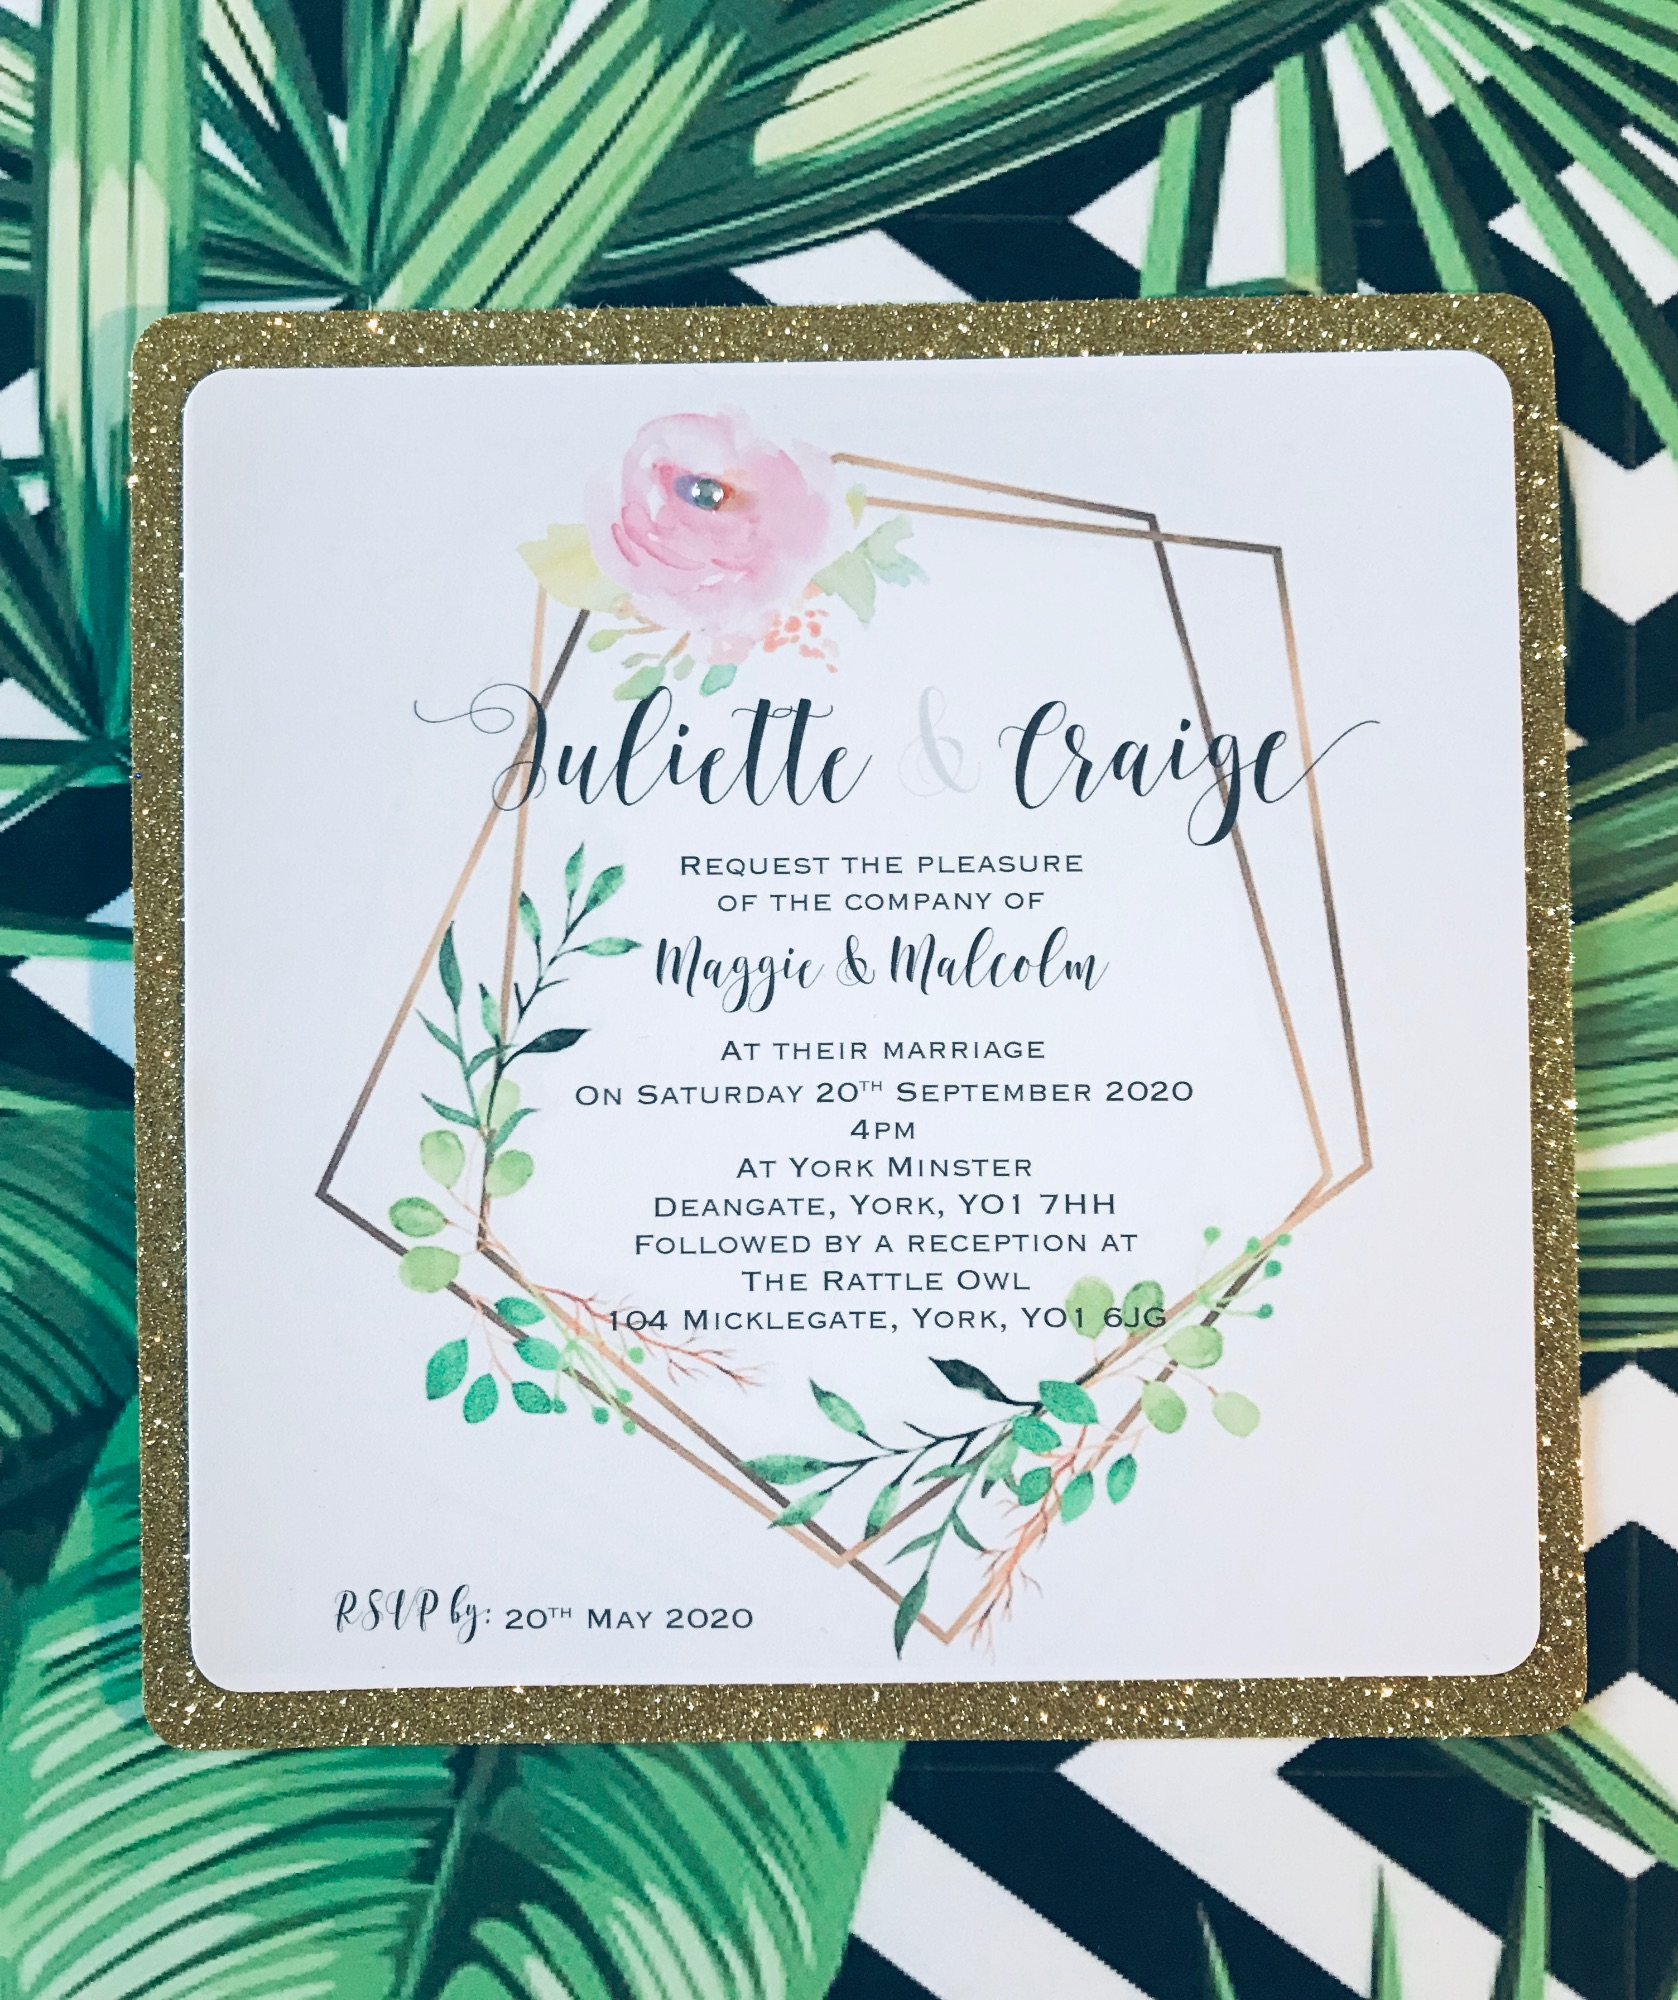 Modern gold glitter wedding invitation with modern rose pink border